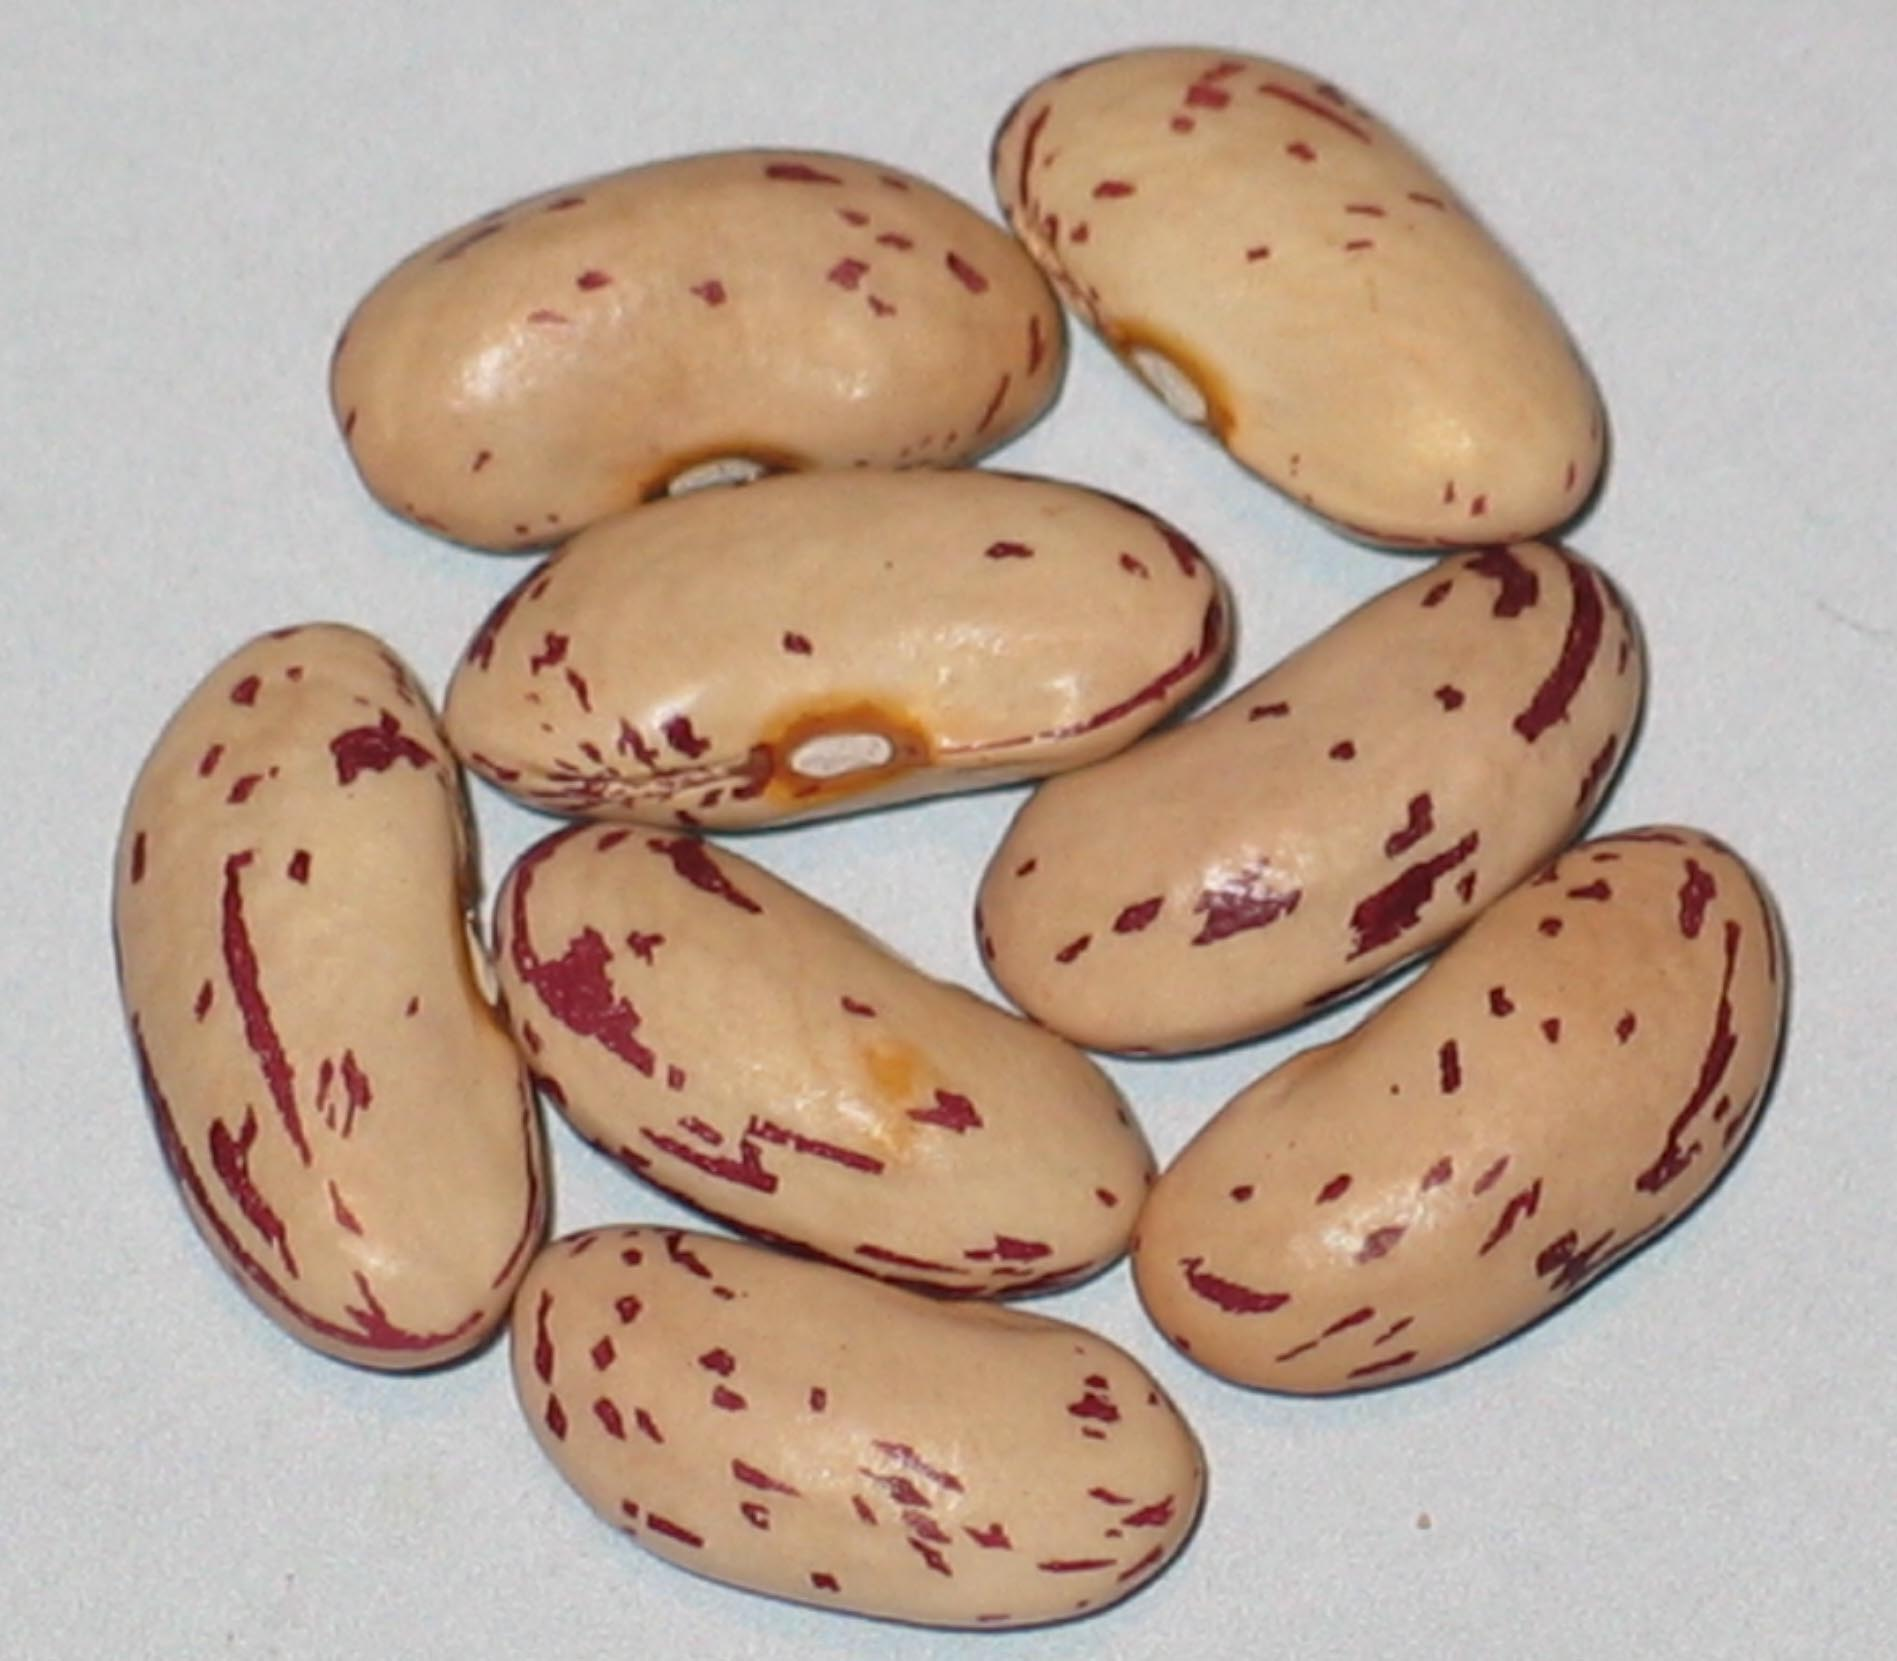 image of Boston Favorite beans